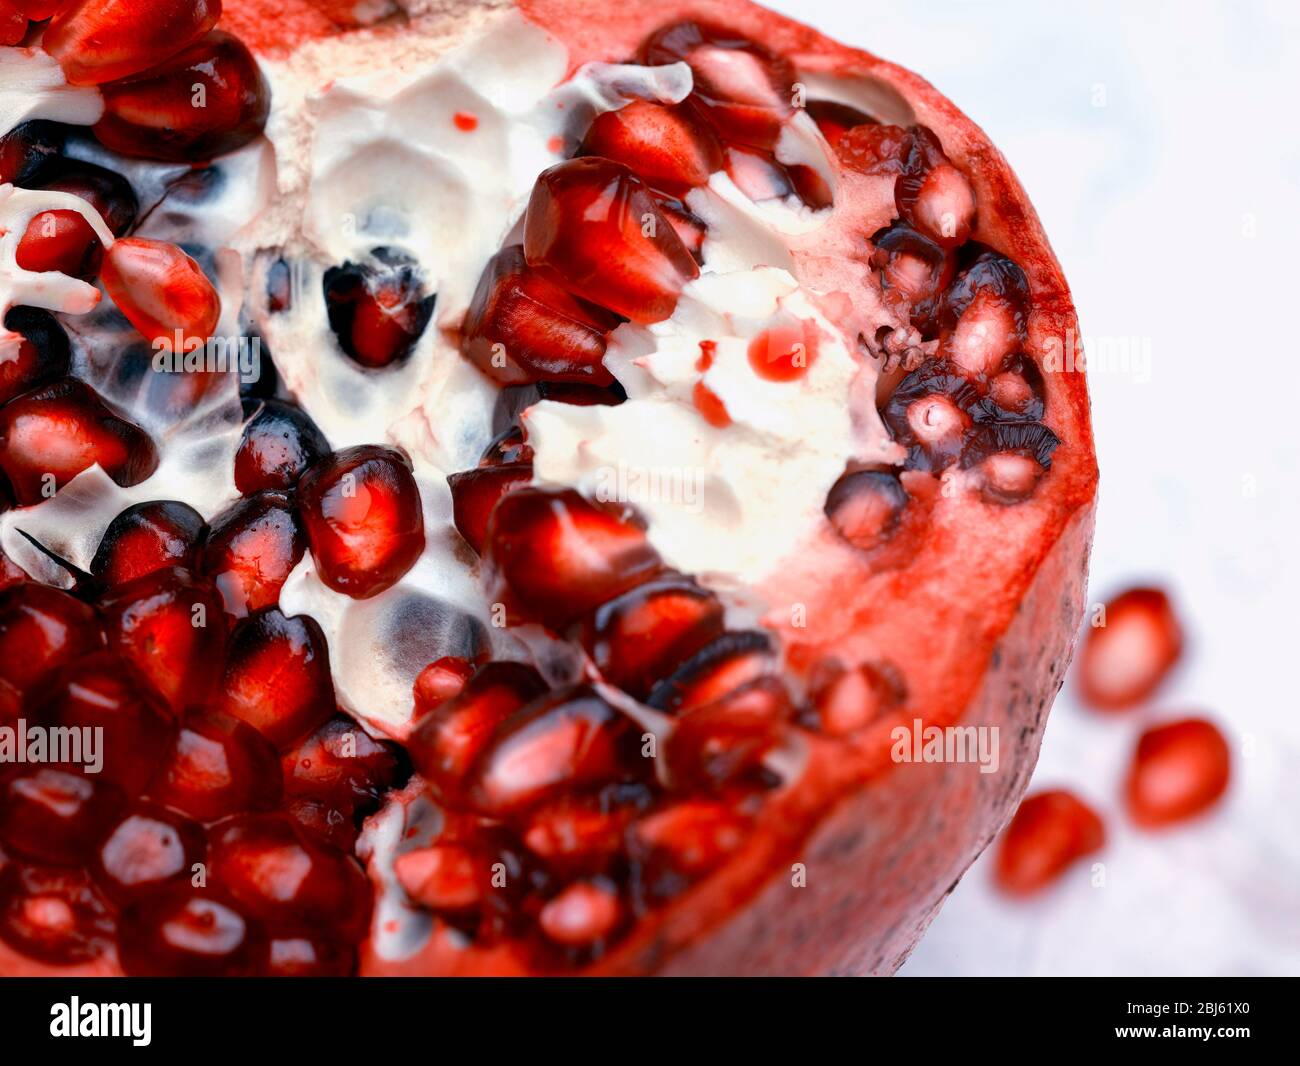 Still-life of Pomegranate and seeds depiction, natural fruit portrait Stock Photo